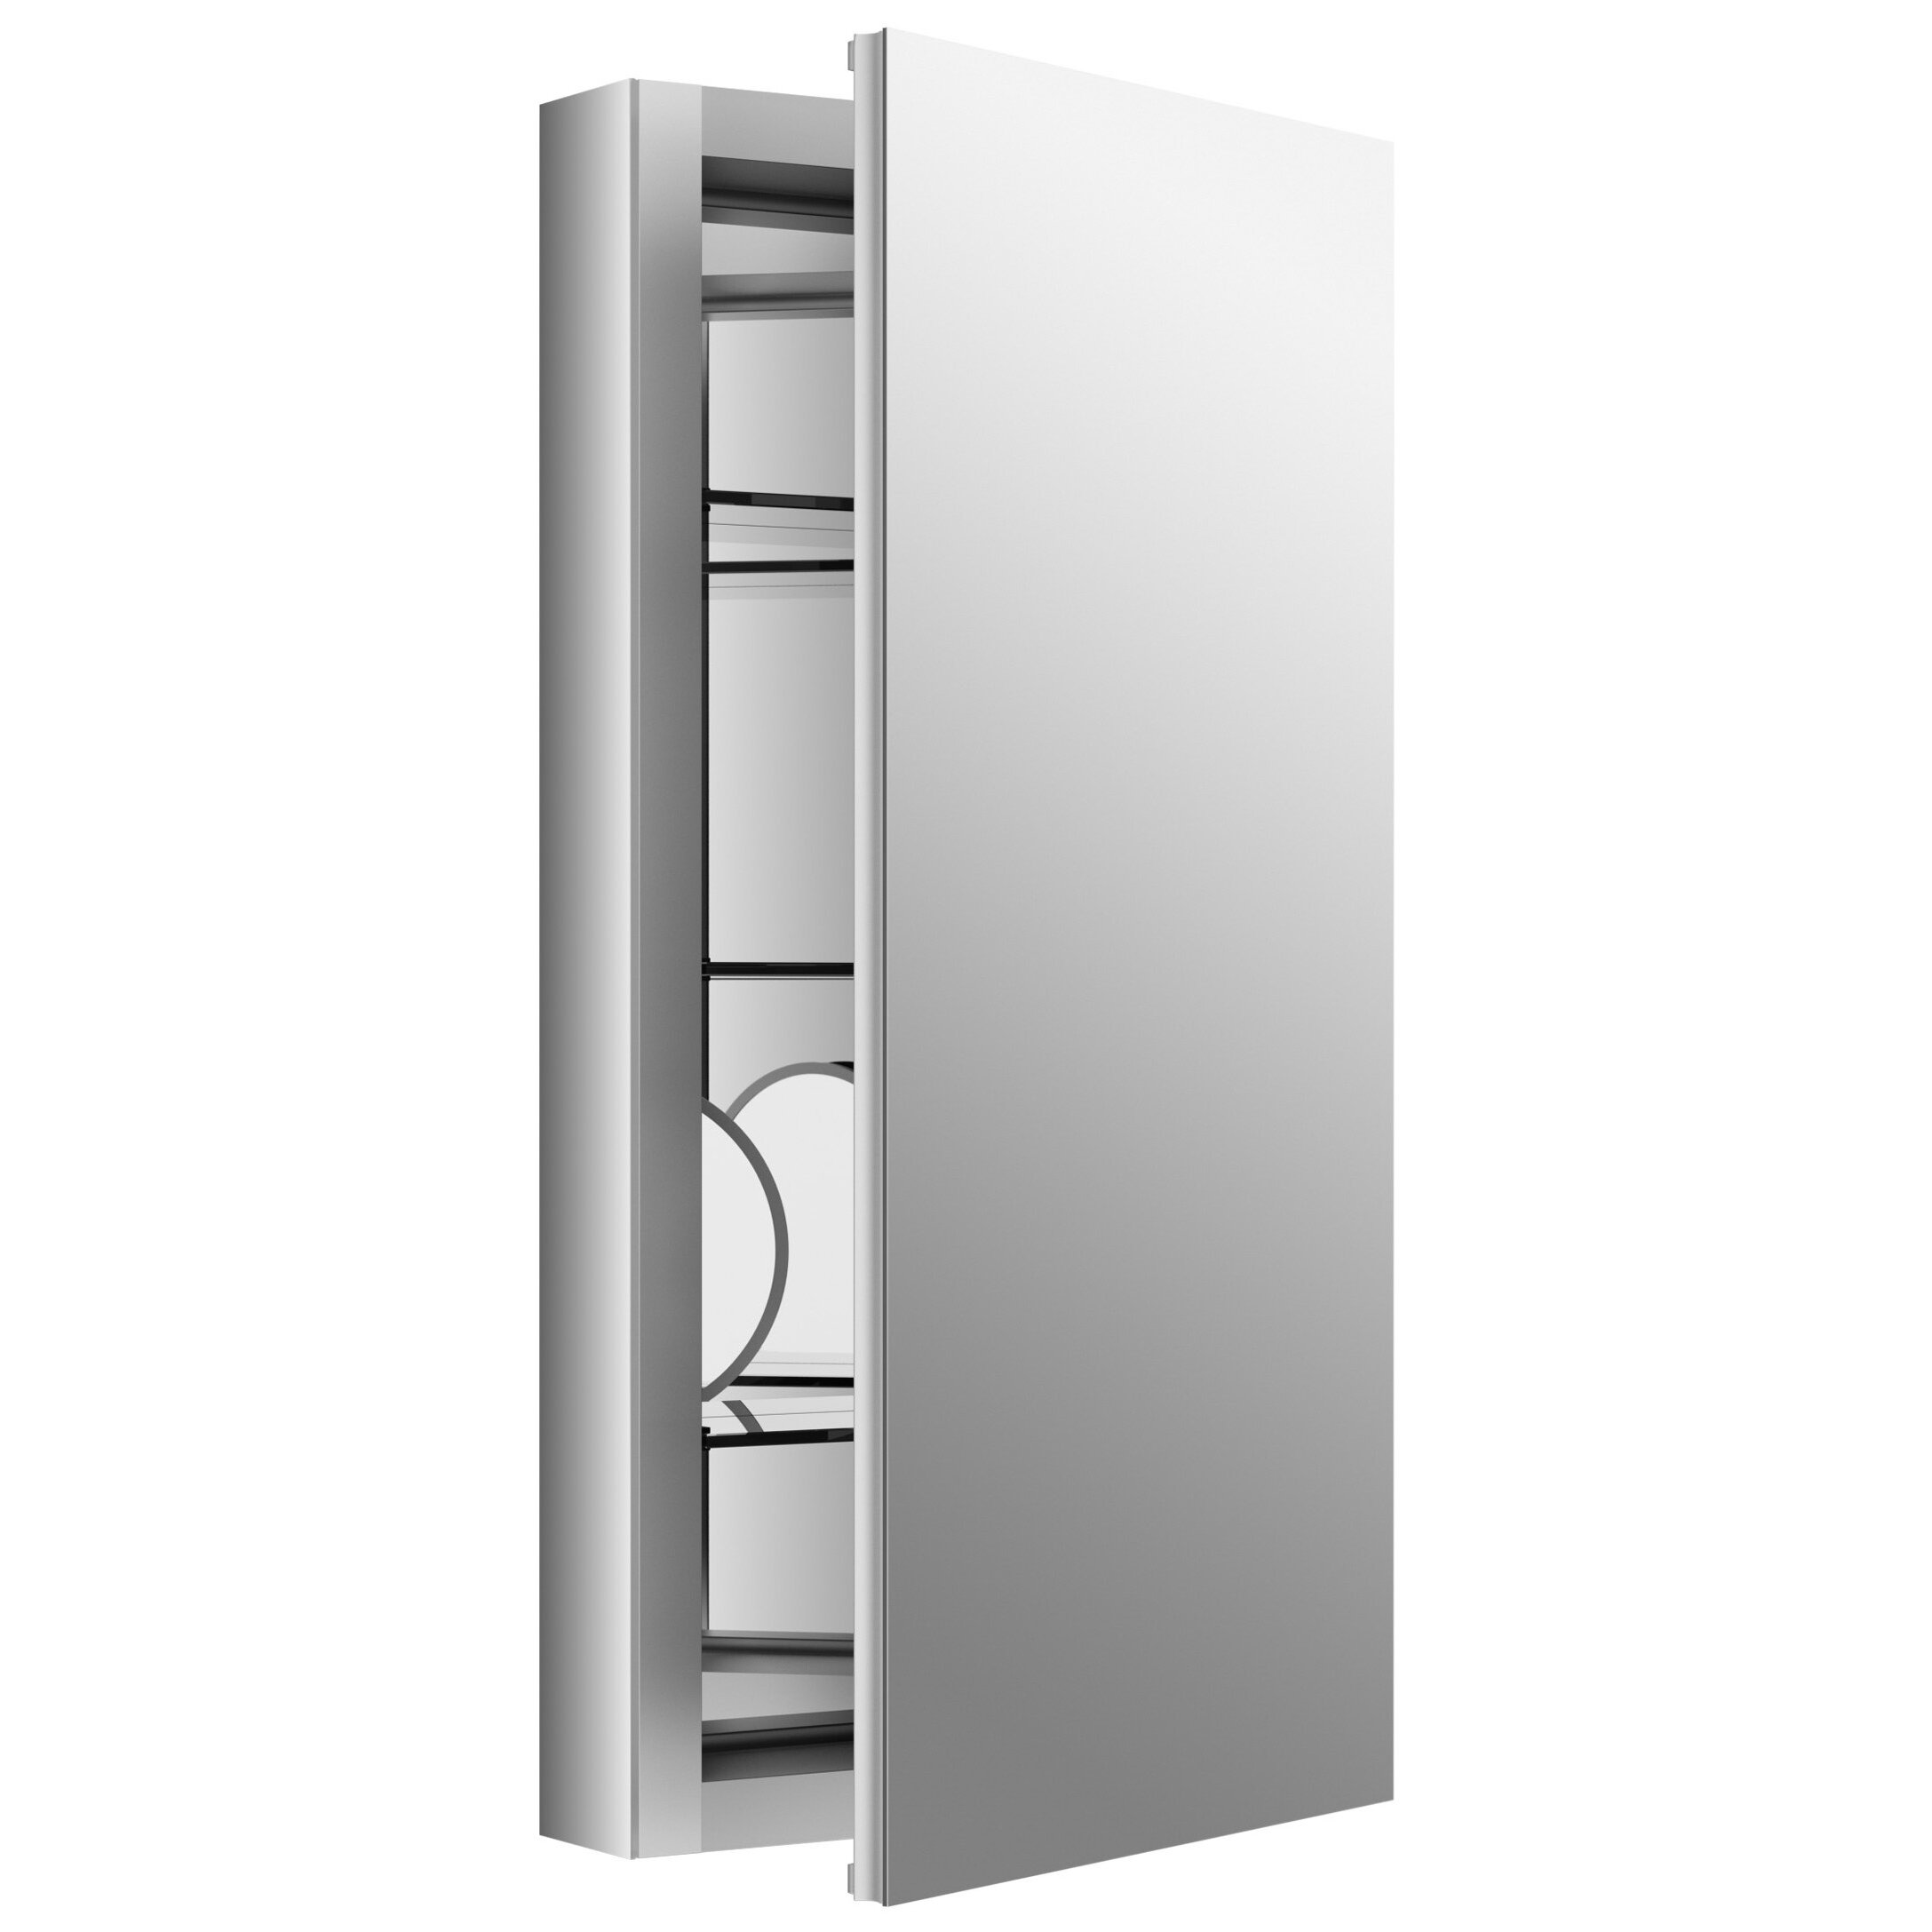 Kohler Verdera 15 Quot W X 30 Quot H Aluminum Medicine Cabinet With Adjustable Magnifying Mirror And